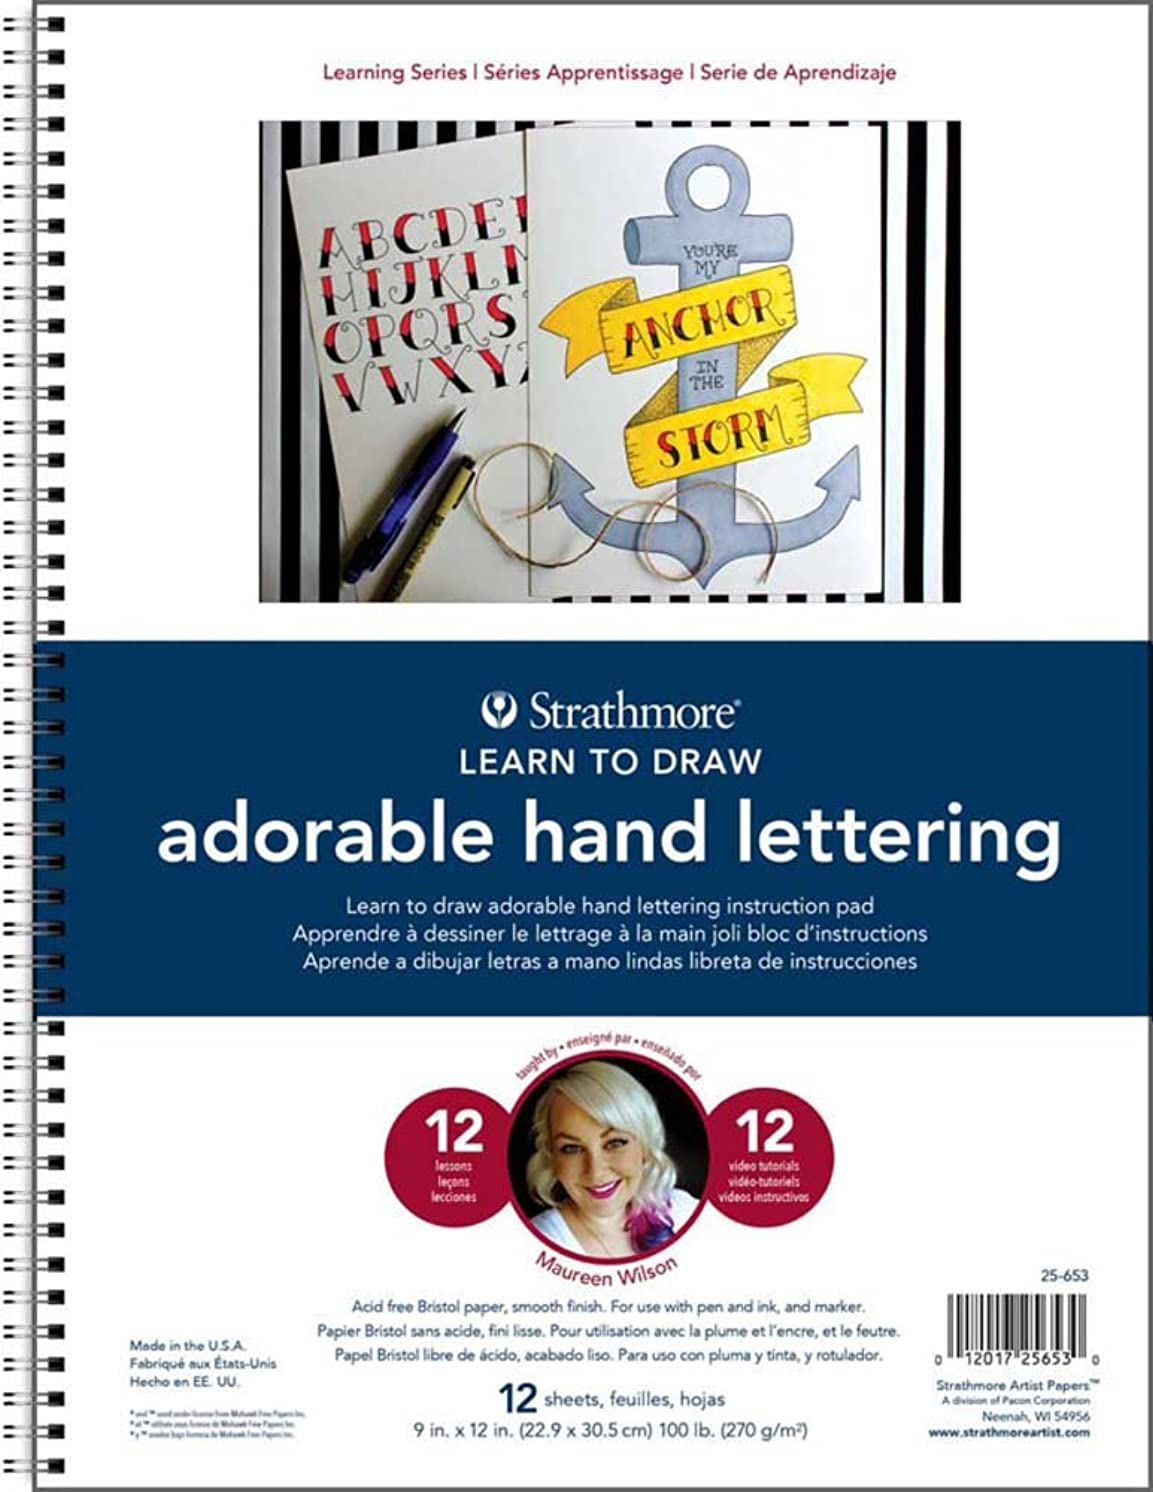 Strathmore ((25-653-1 200 Learning Series Adorable Hand Lettering Pad, 28 Sheets